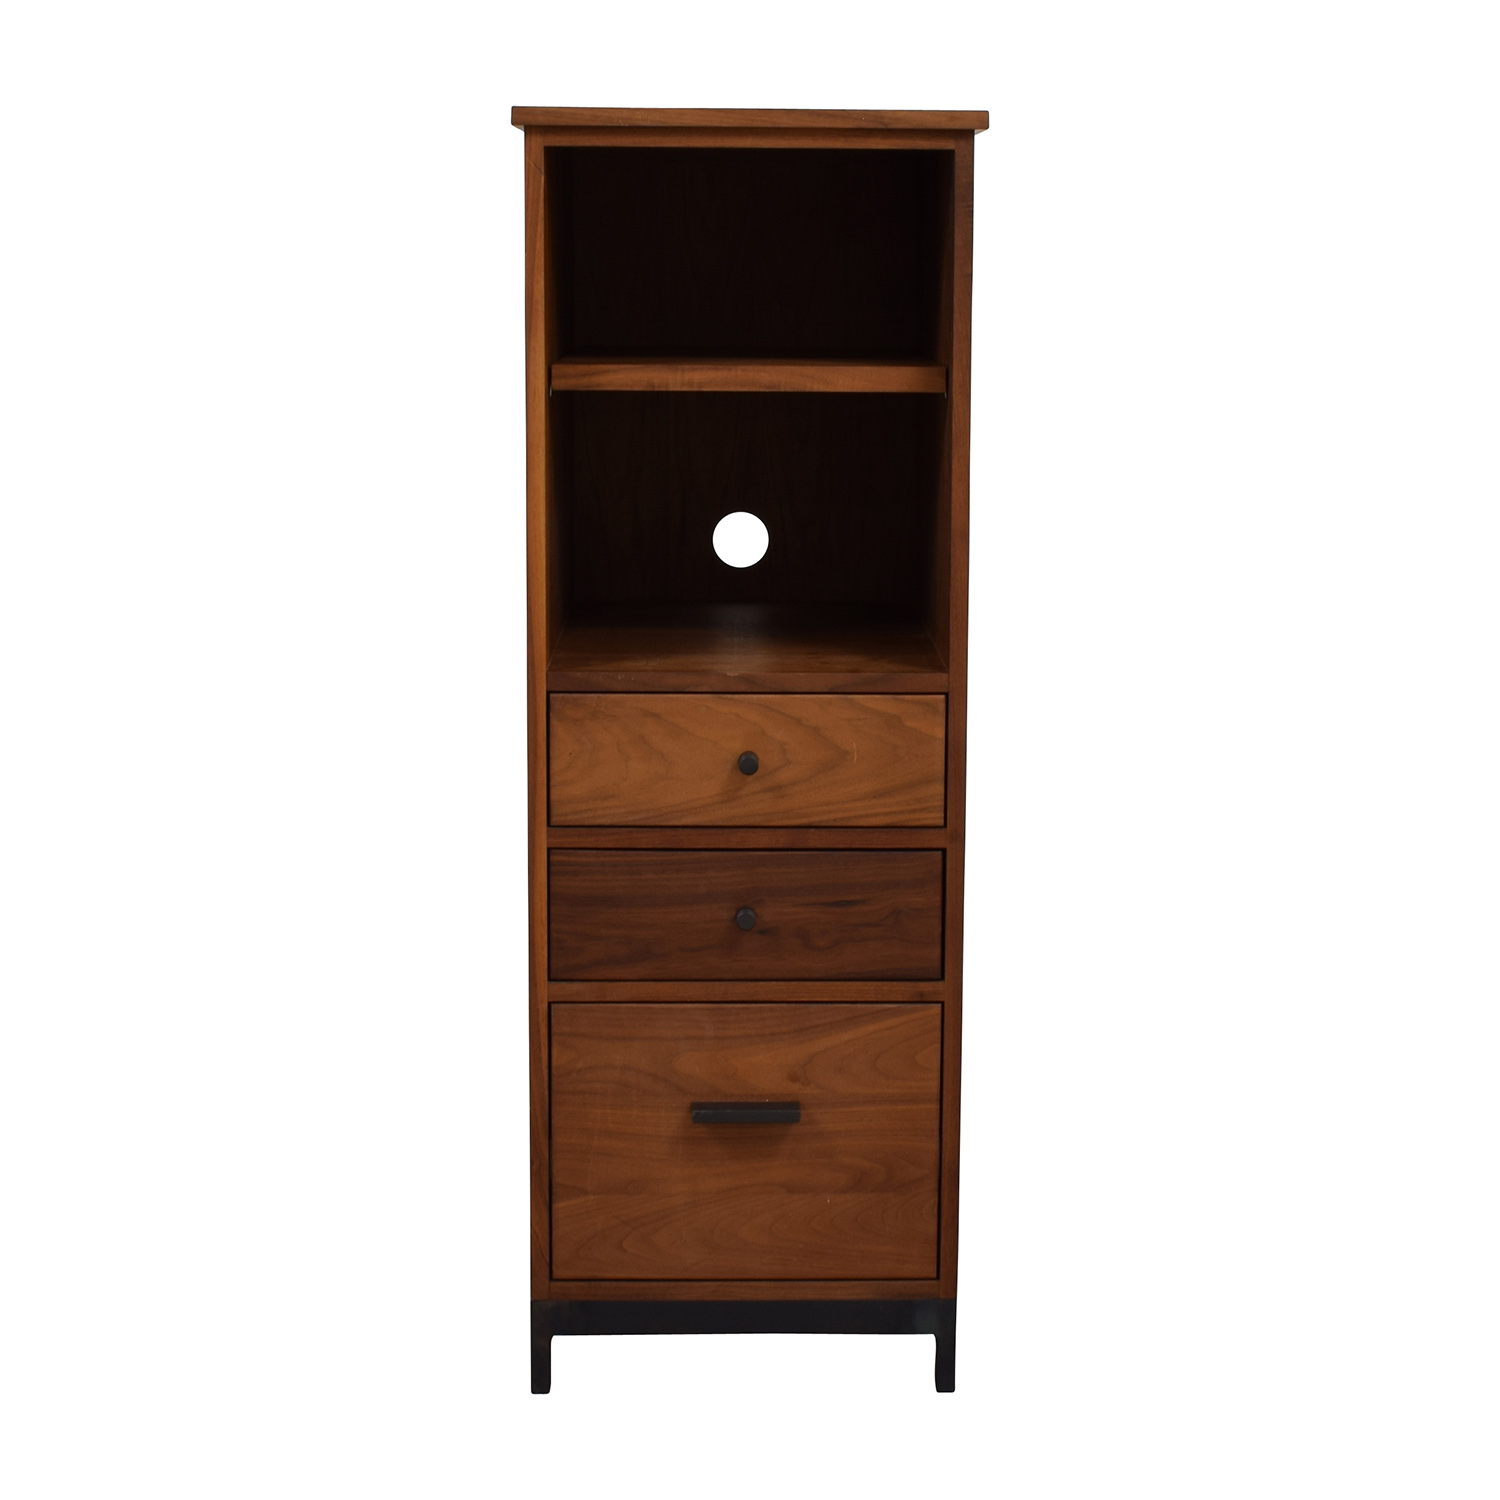 buy Crate and Barrel Tall Dresser or Shelf Crate and Barrel Storage